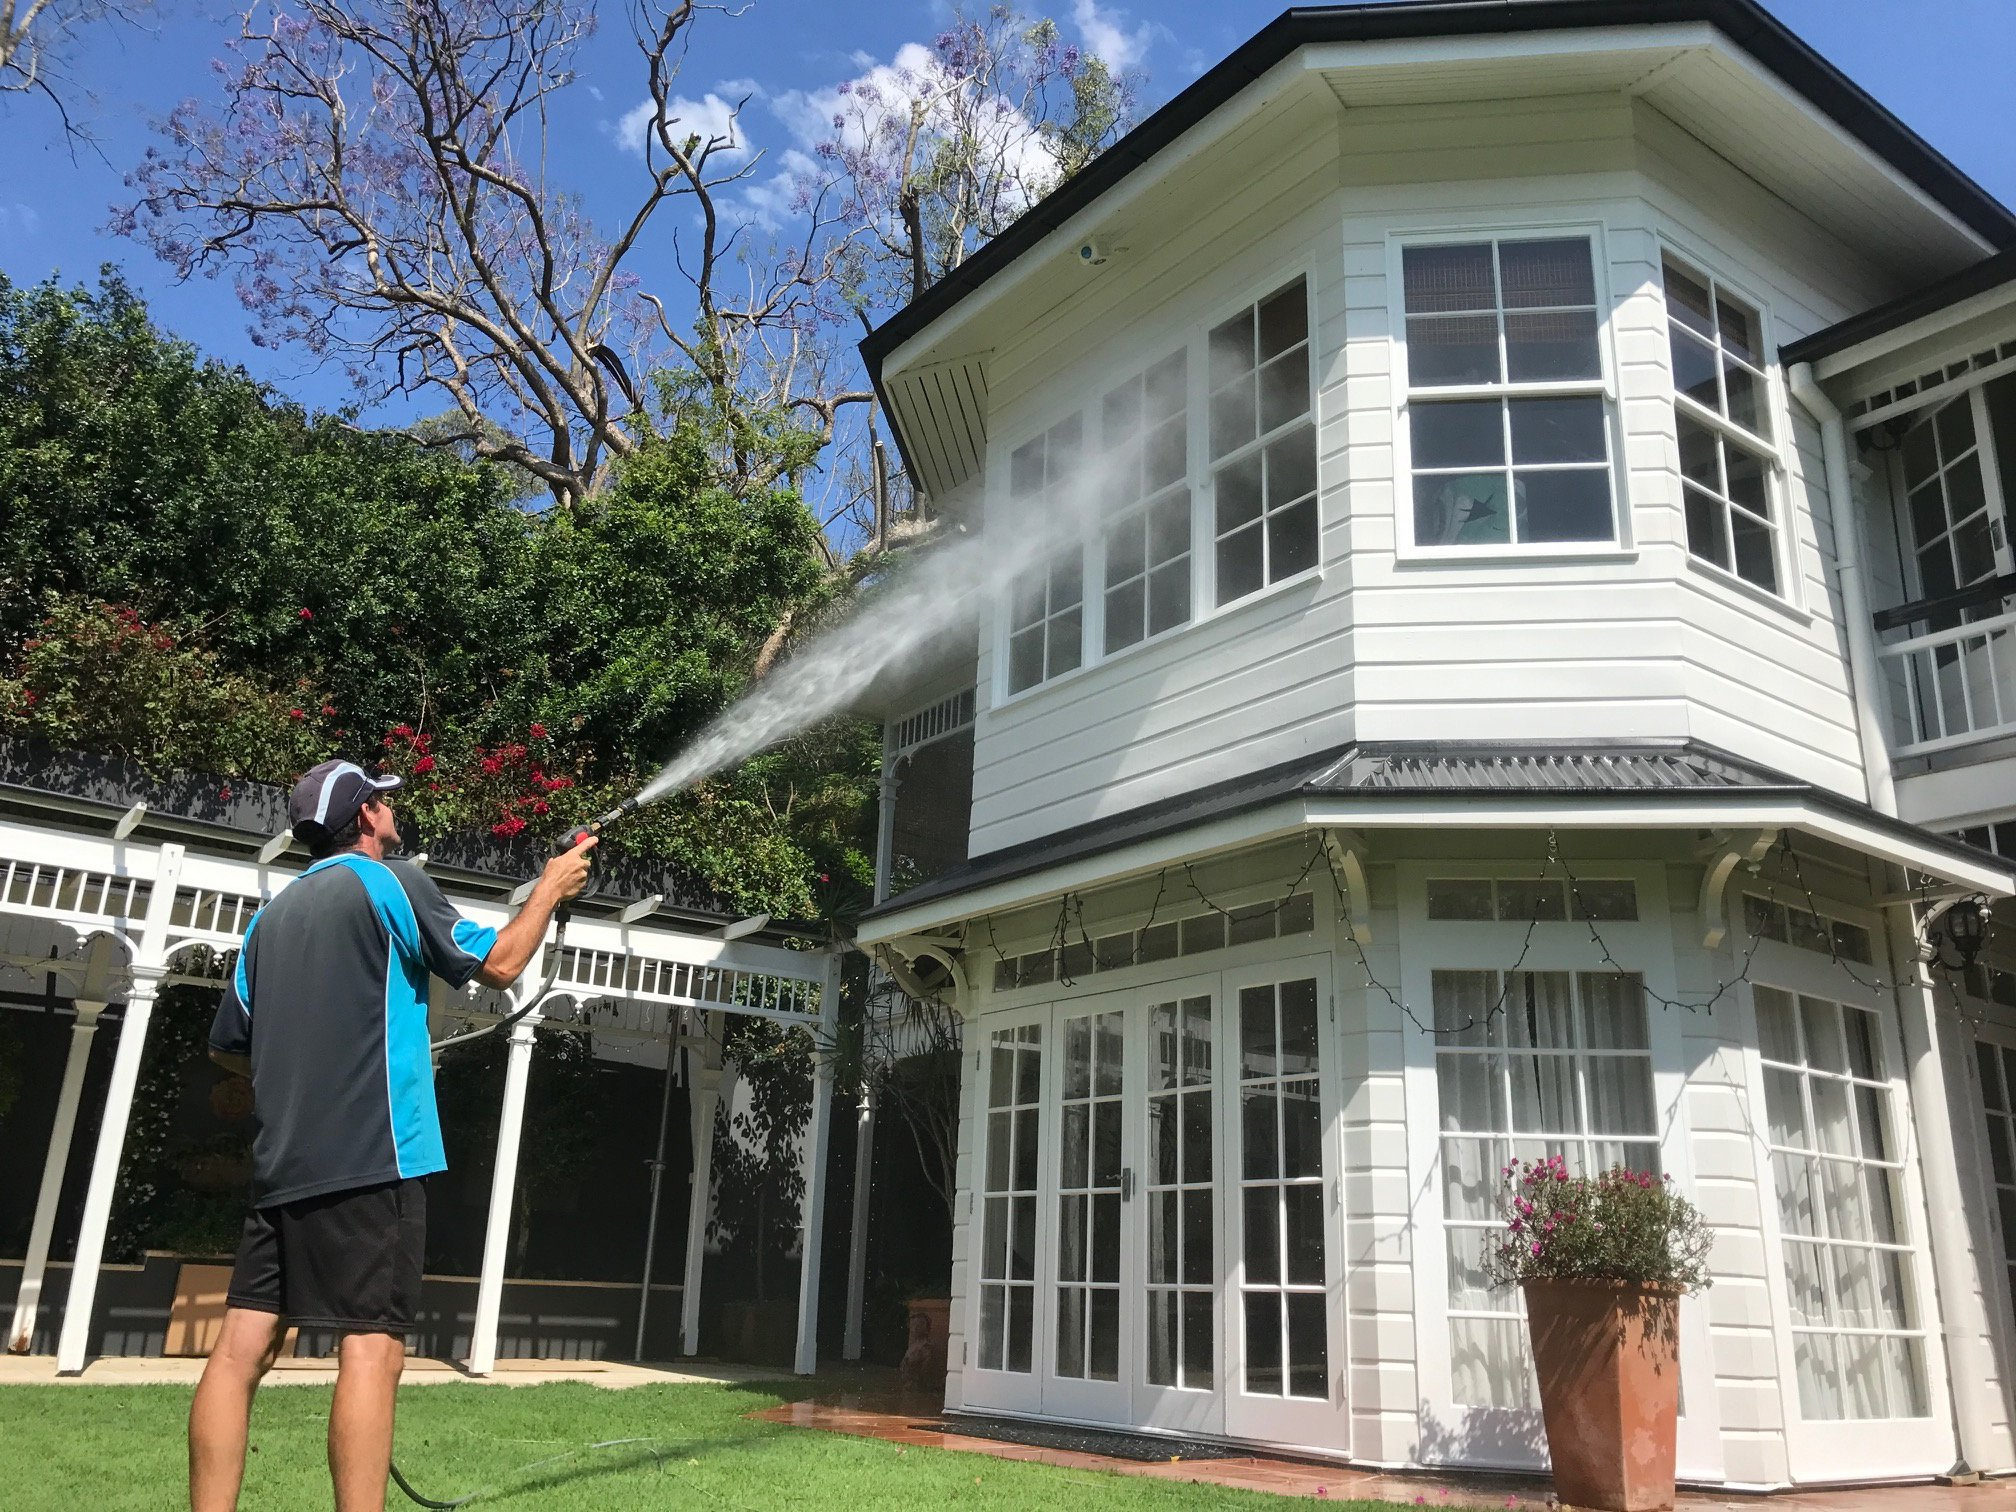 Maroochydore Roof washing services